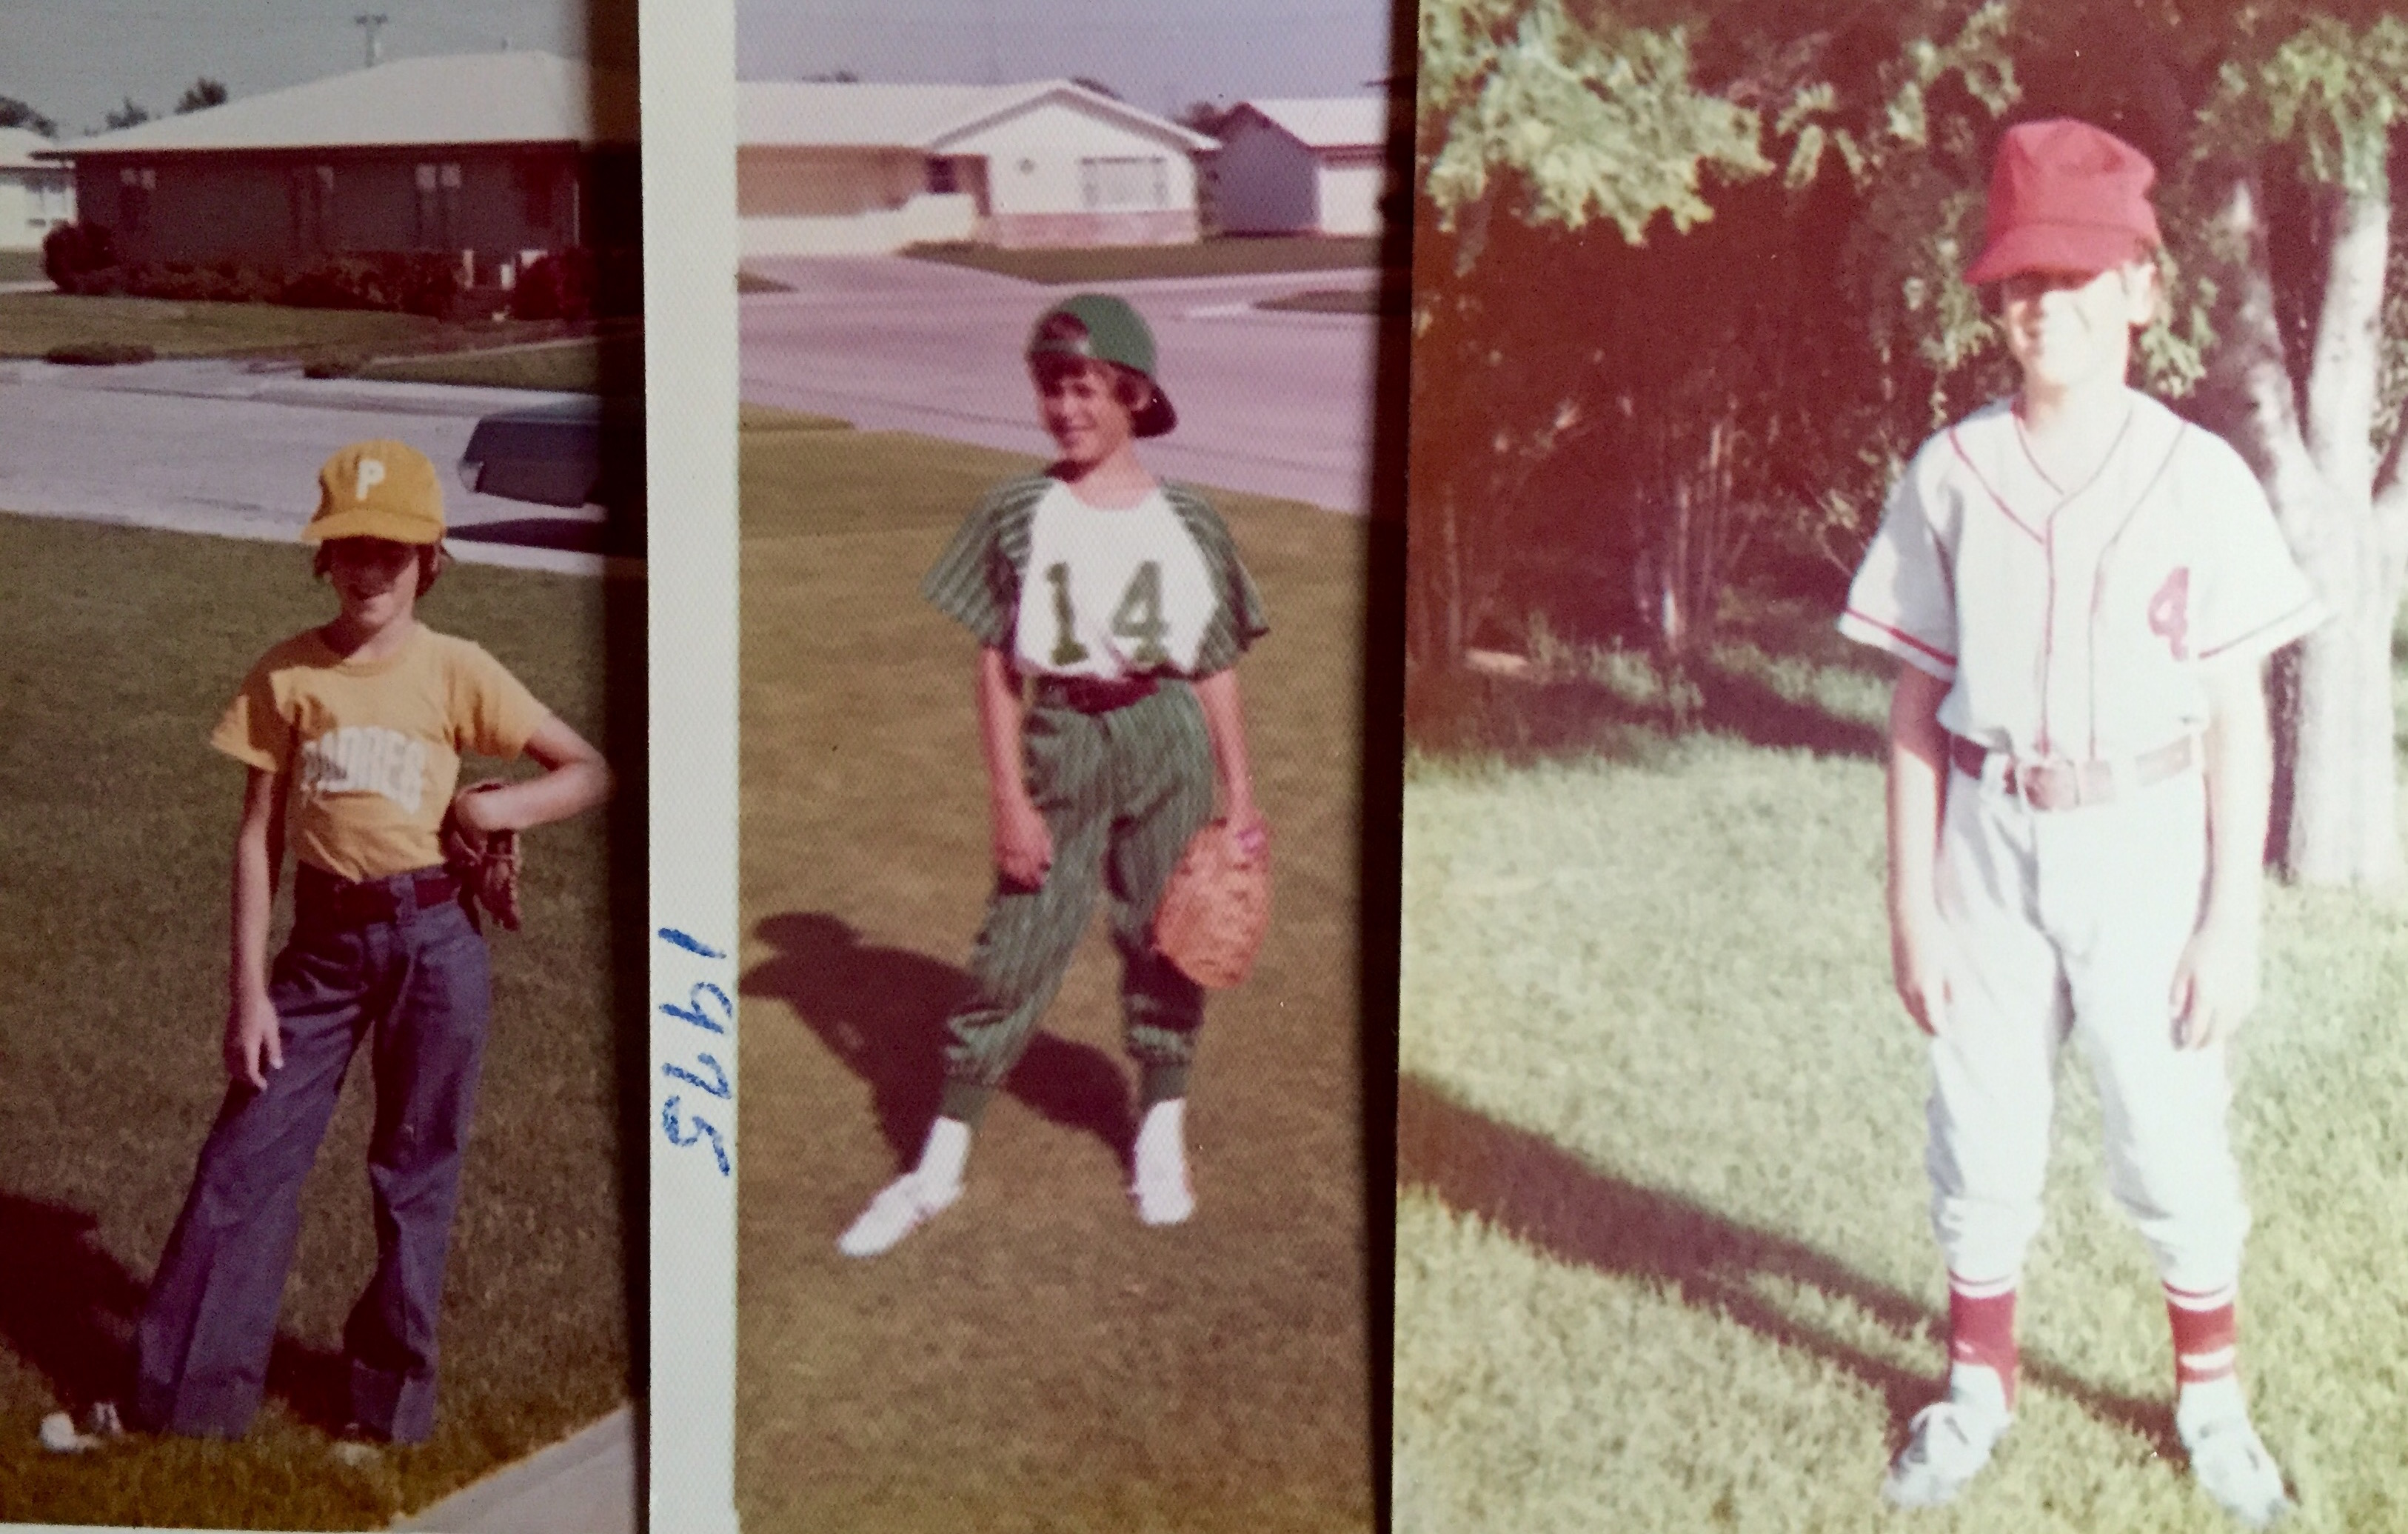 Standard little league-issue bell bottoms and great-fitting caps.